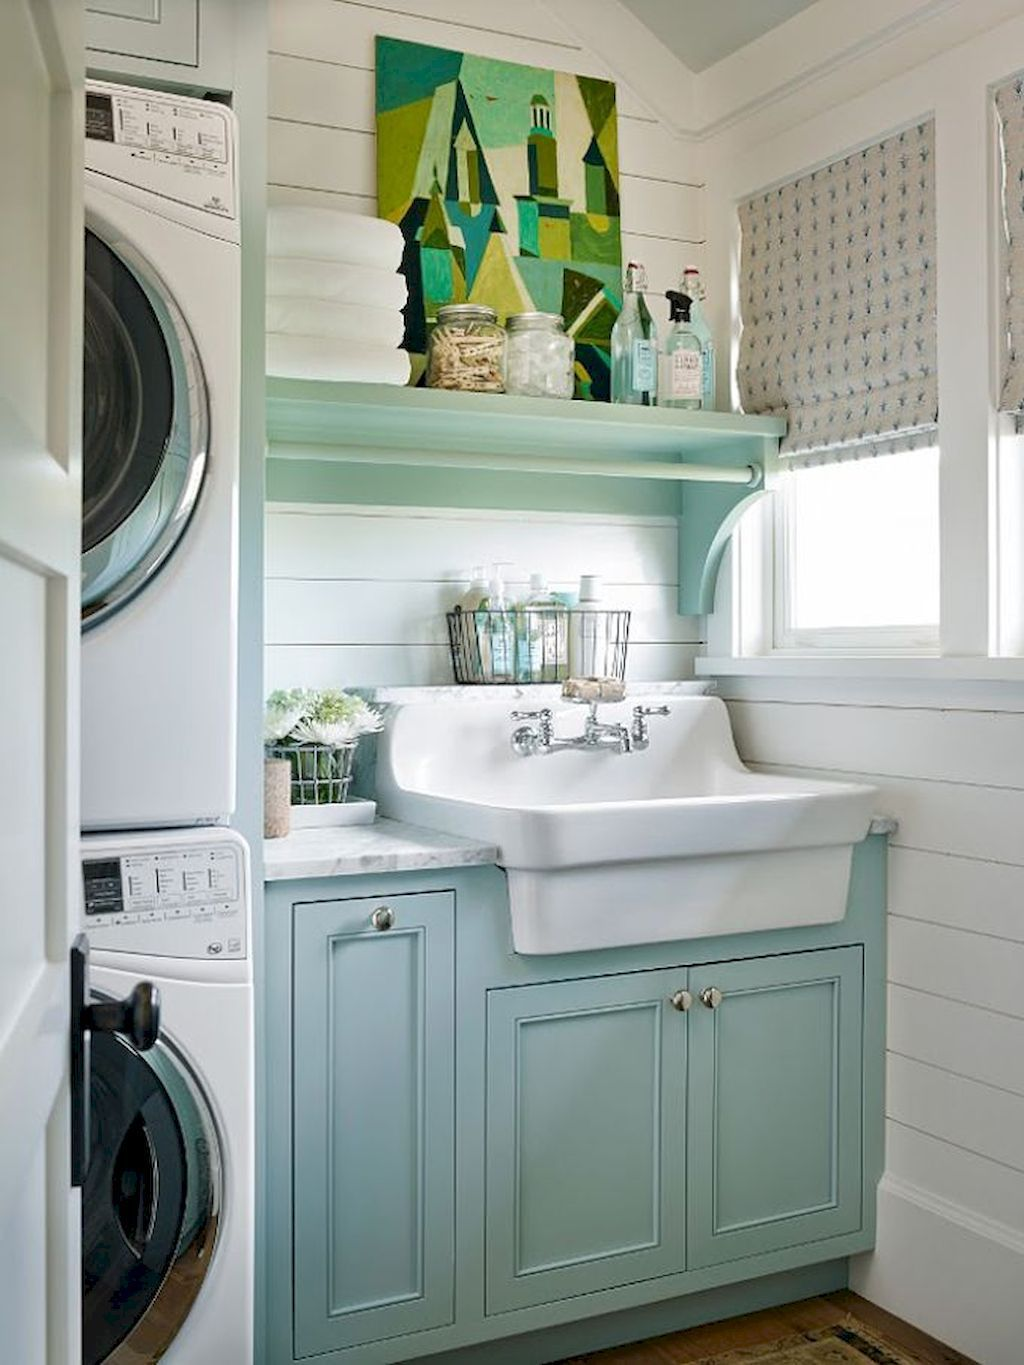 12 modern farmhouse laundry room ideas laundry in on extraordinary small laundry room design and decorating ideas modest laundry space id=92522